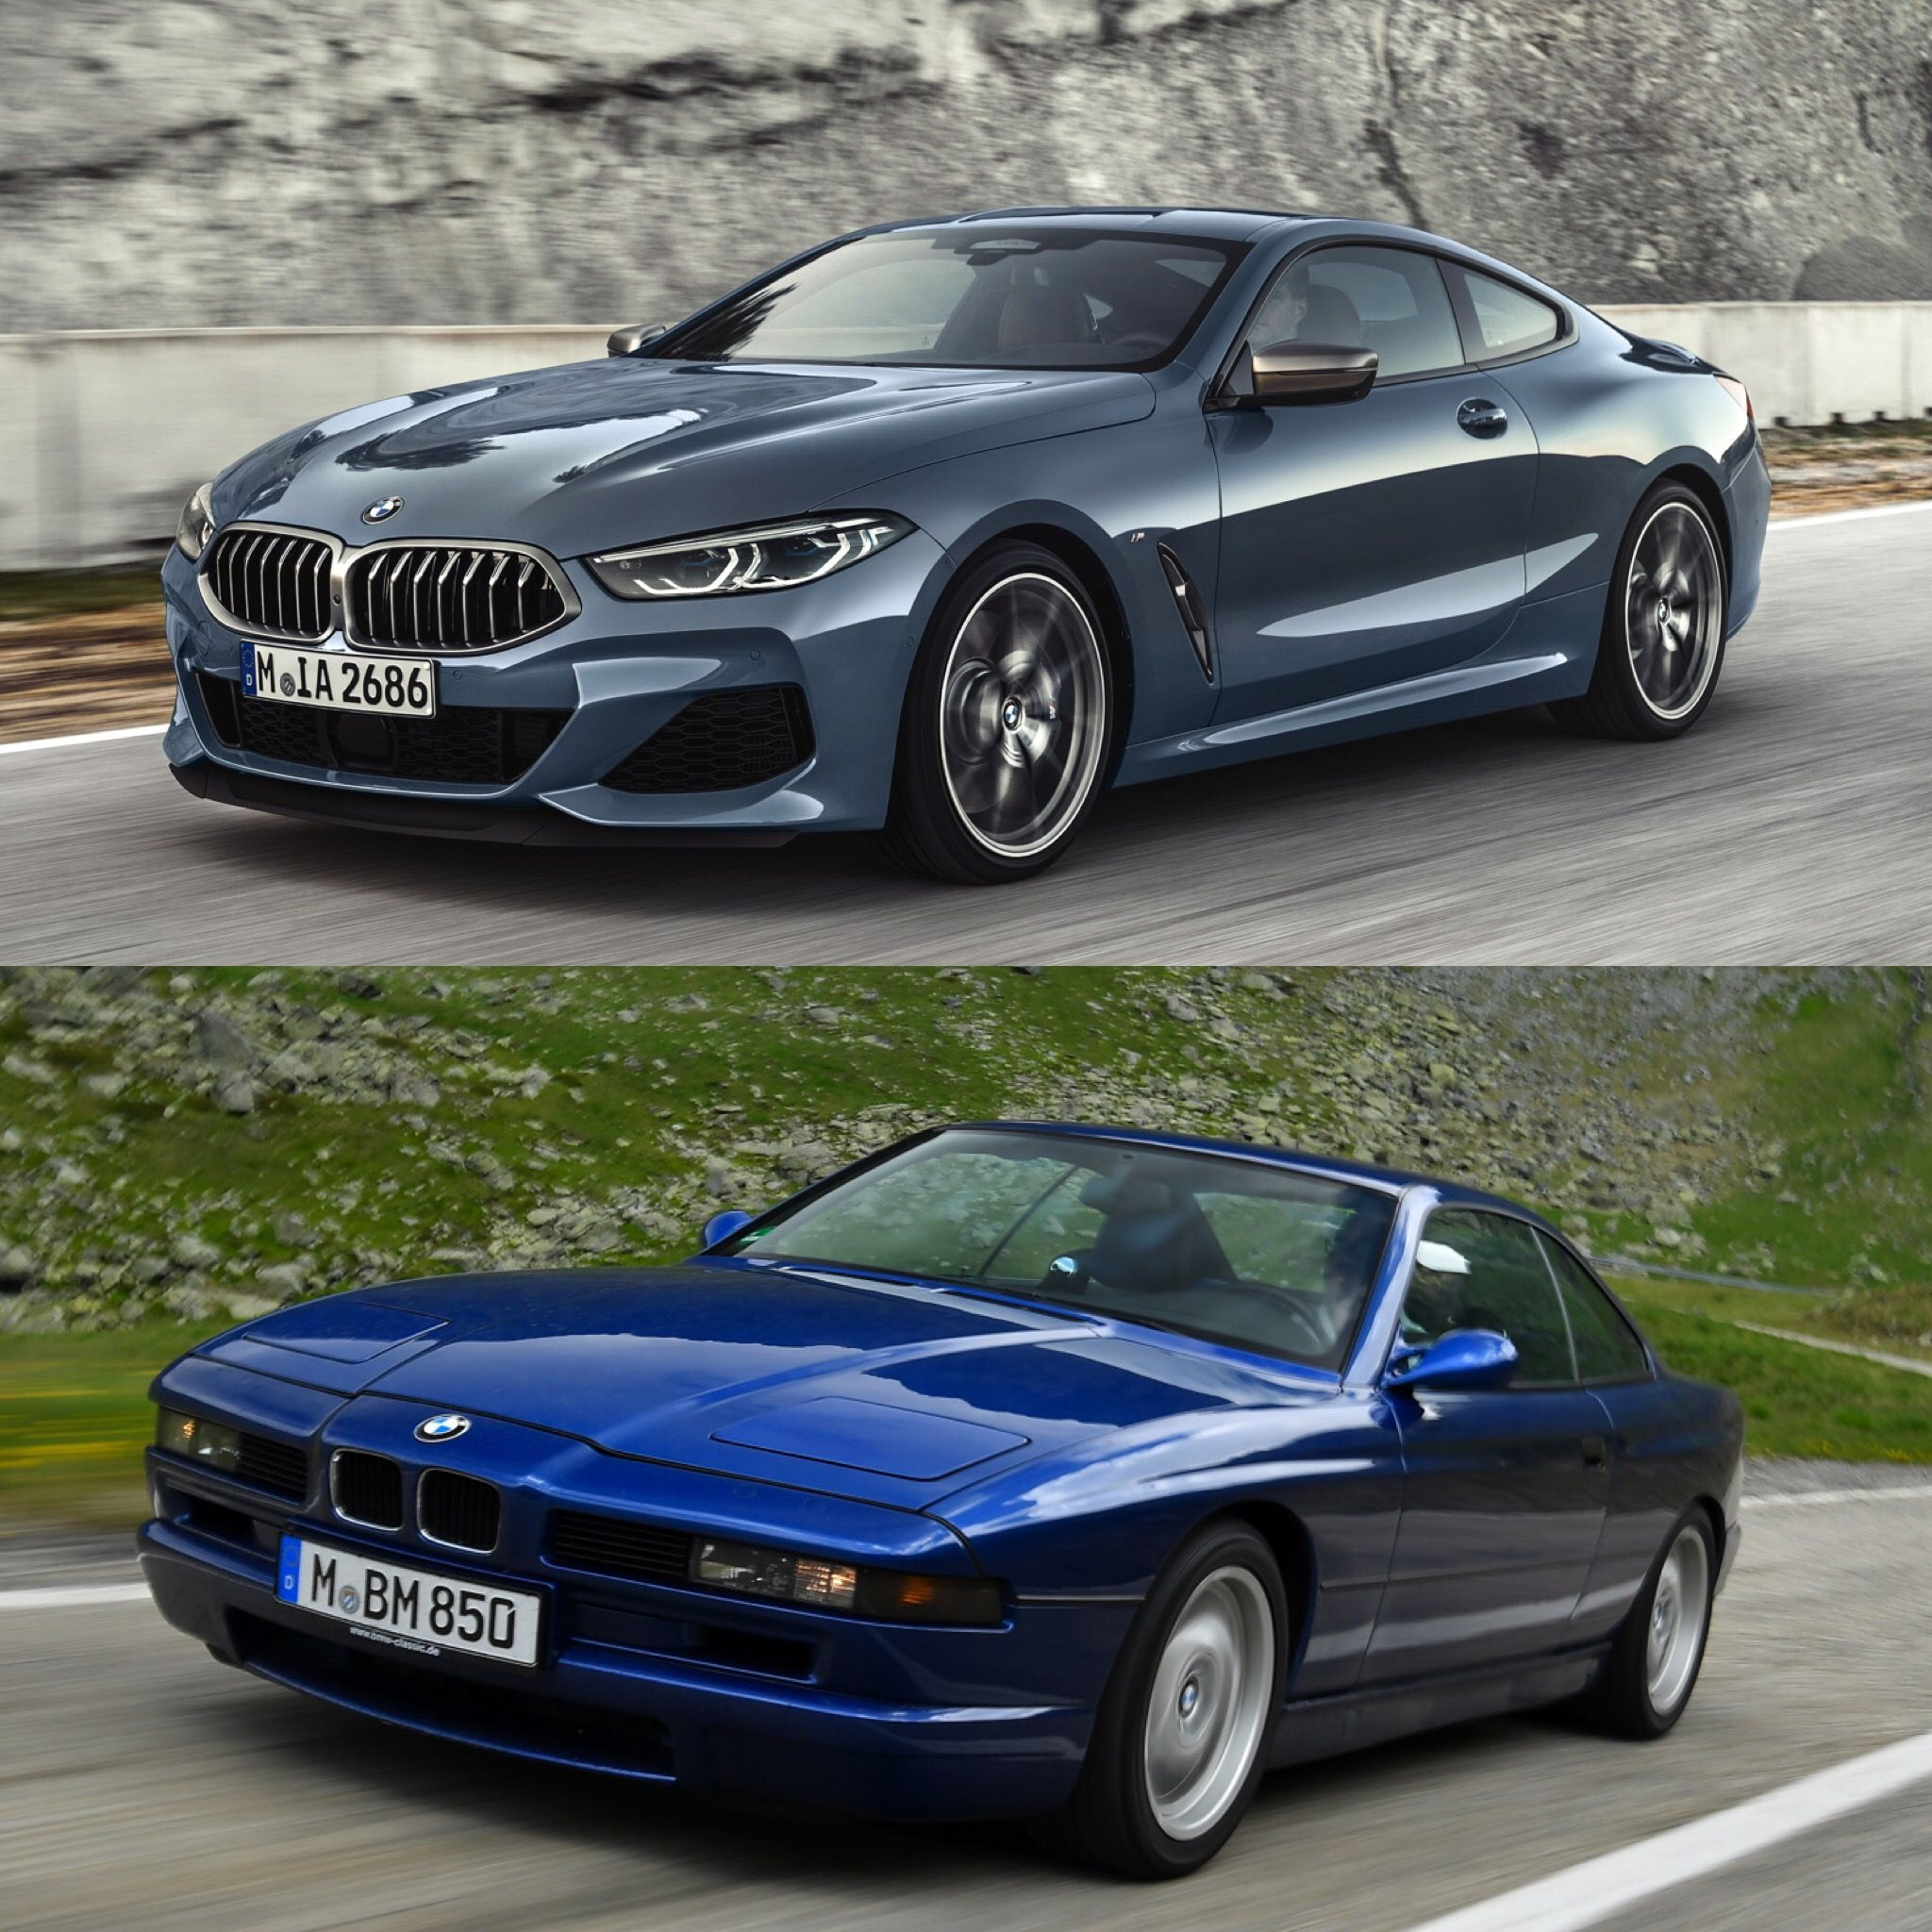 Photo Comparison Old Bmw 8 Series Vs New Bmw 8 Series Bmw New Bmw Bmw Series